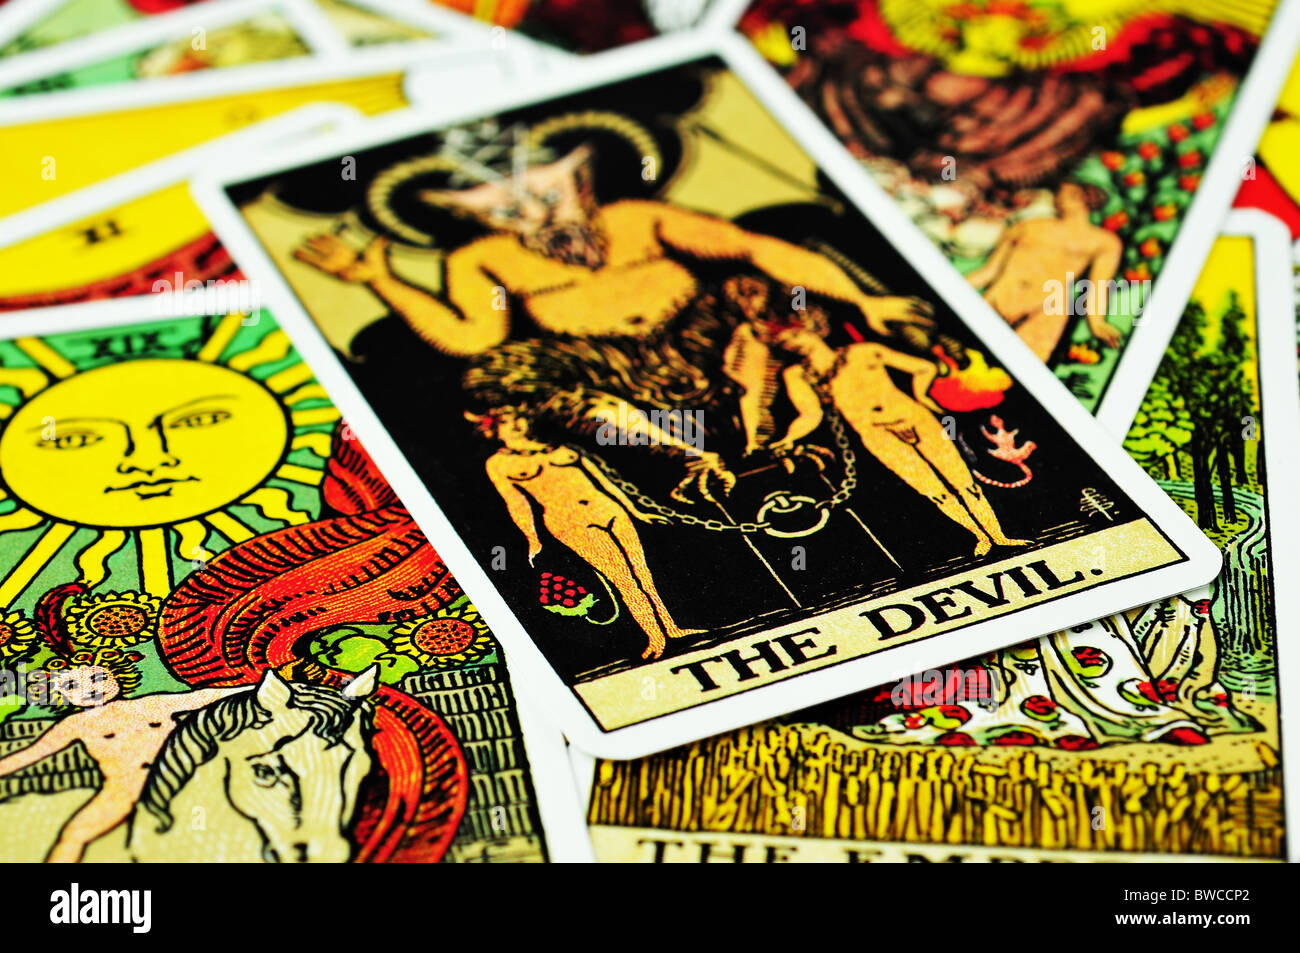 Tarot cards - Stock Image